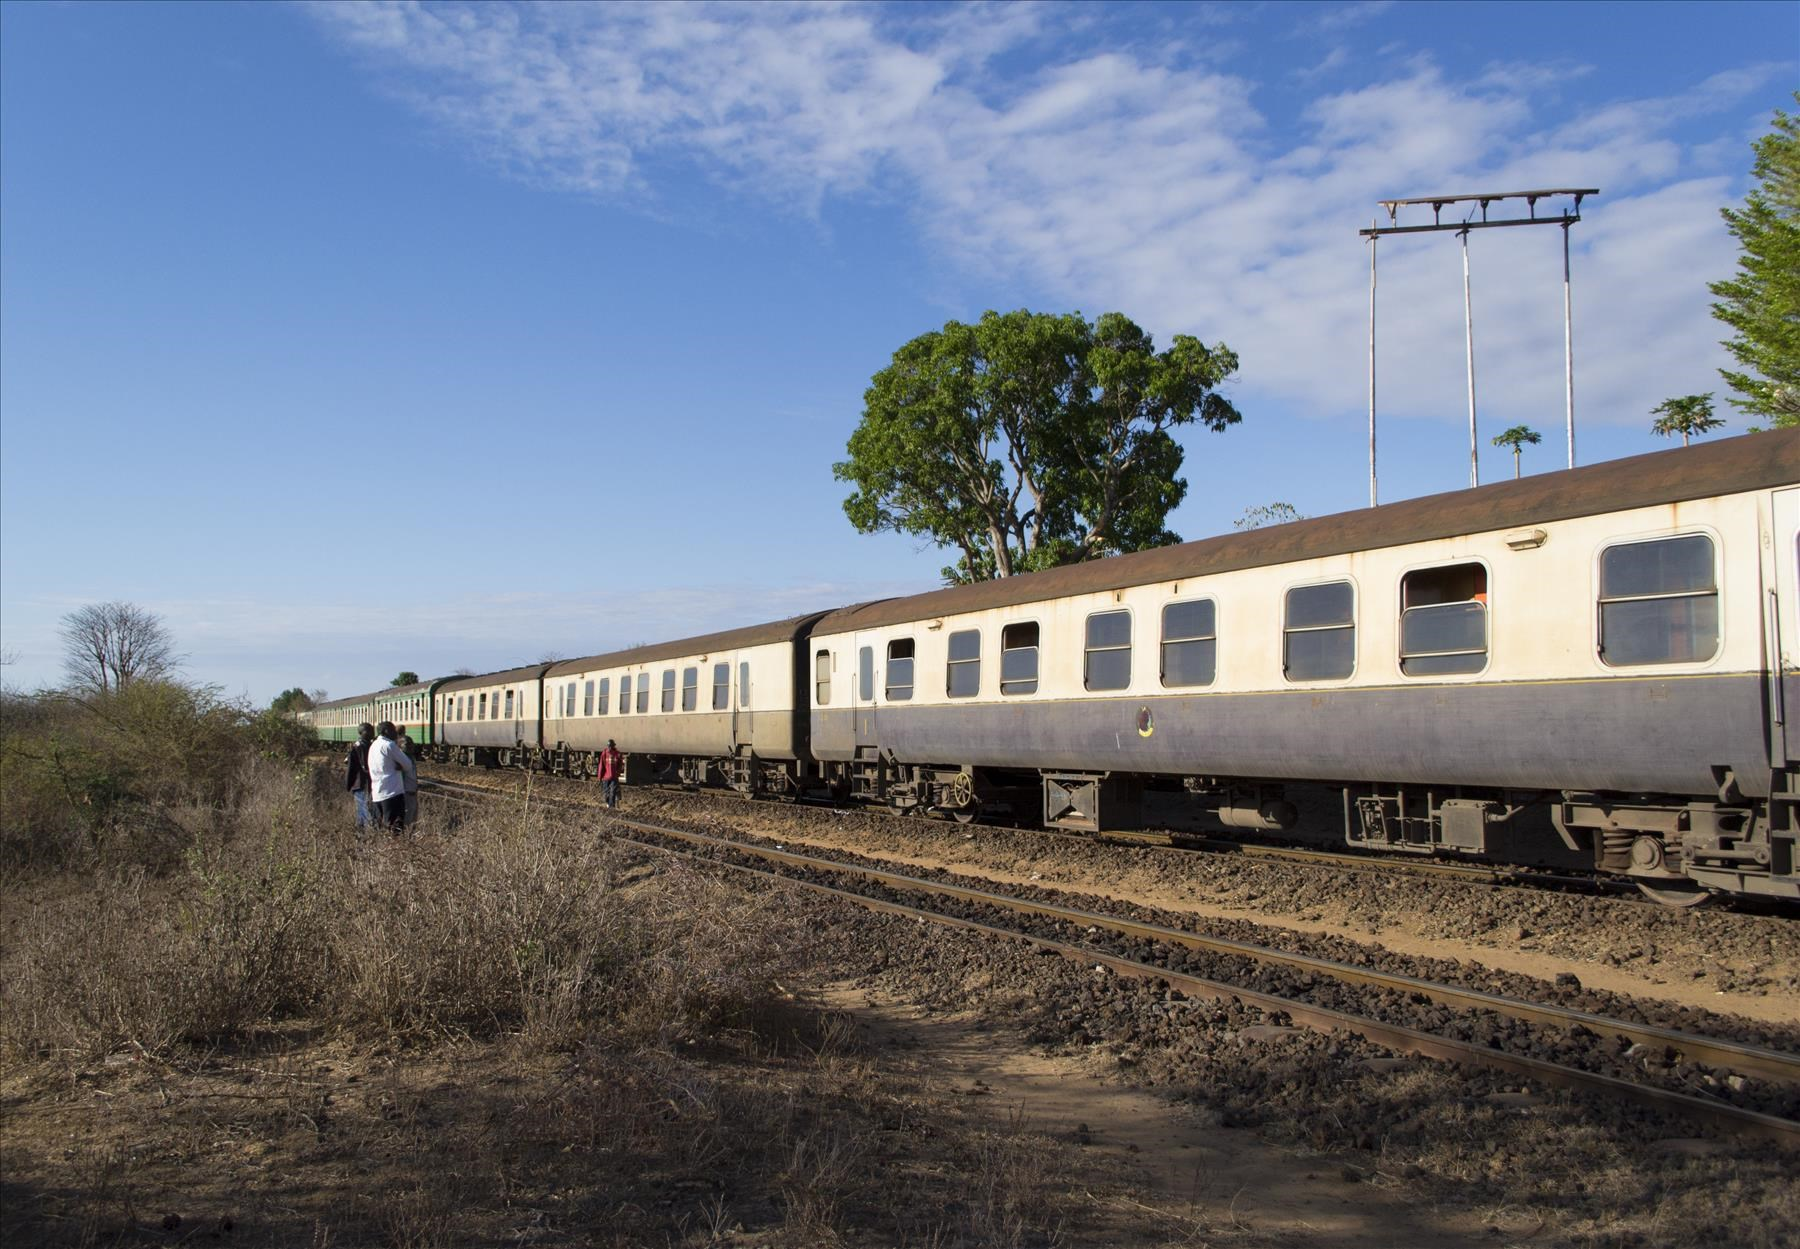 The Lunatic Express Contribution of the Uganda Railway to the port and socio-economic development of Kenya and East Africa